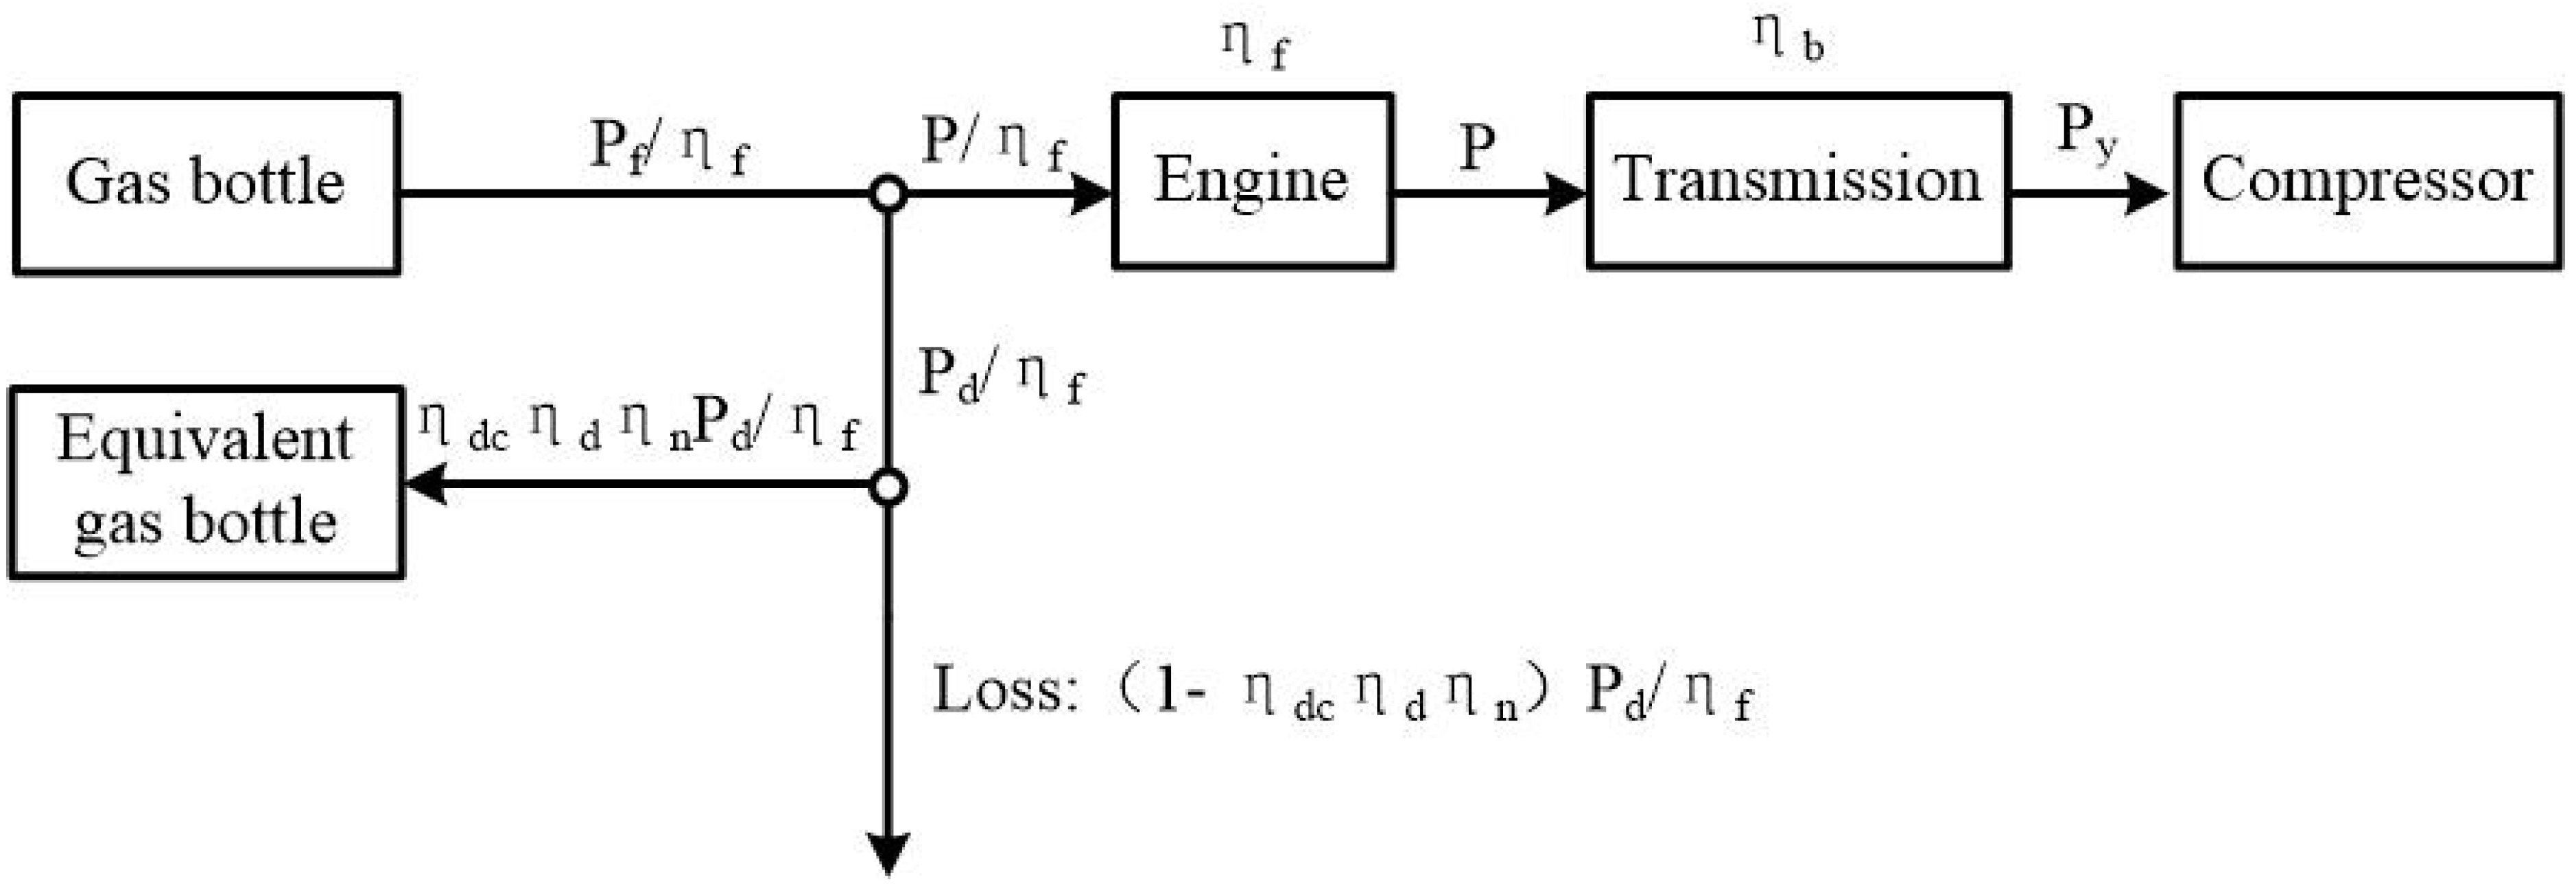 Energies Free Full Text Energy Management Of A Hybrid Power Gas Engine Heat Loss Diagram No